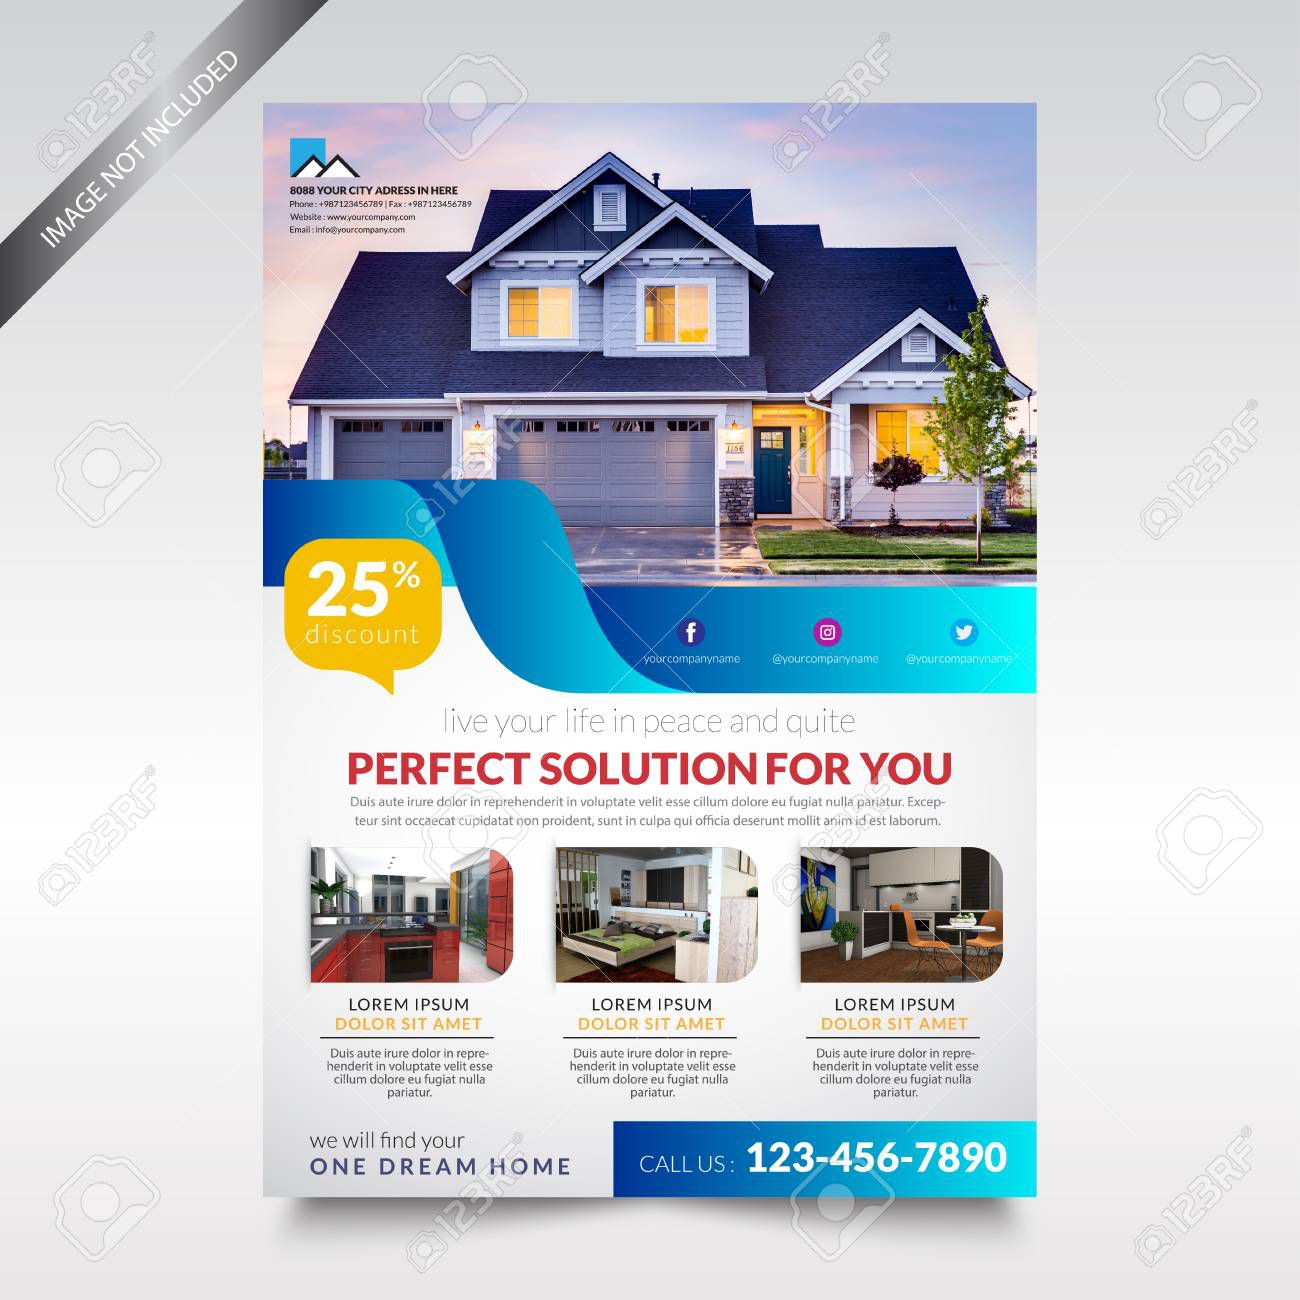 001 Beautiful Real Estate Flyer Template High Definition  Publisher Word FreeFull